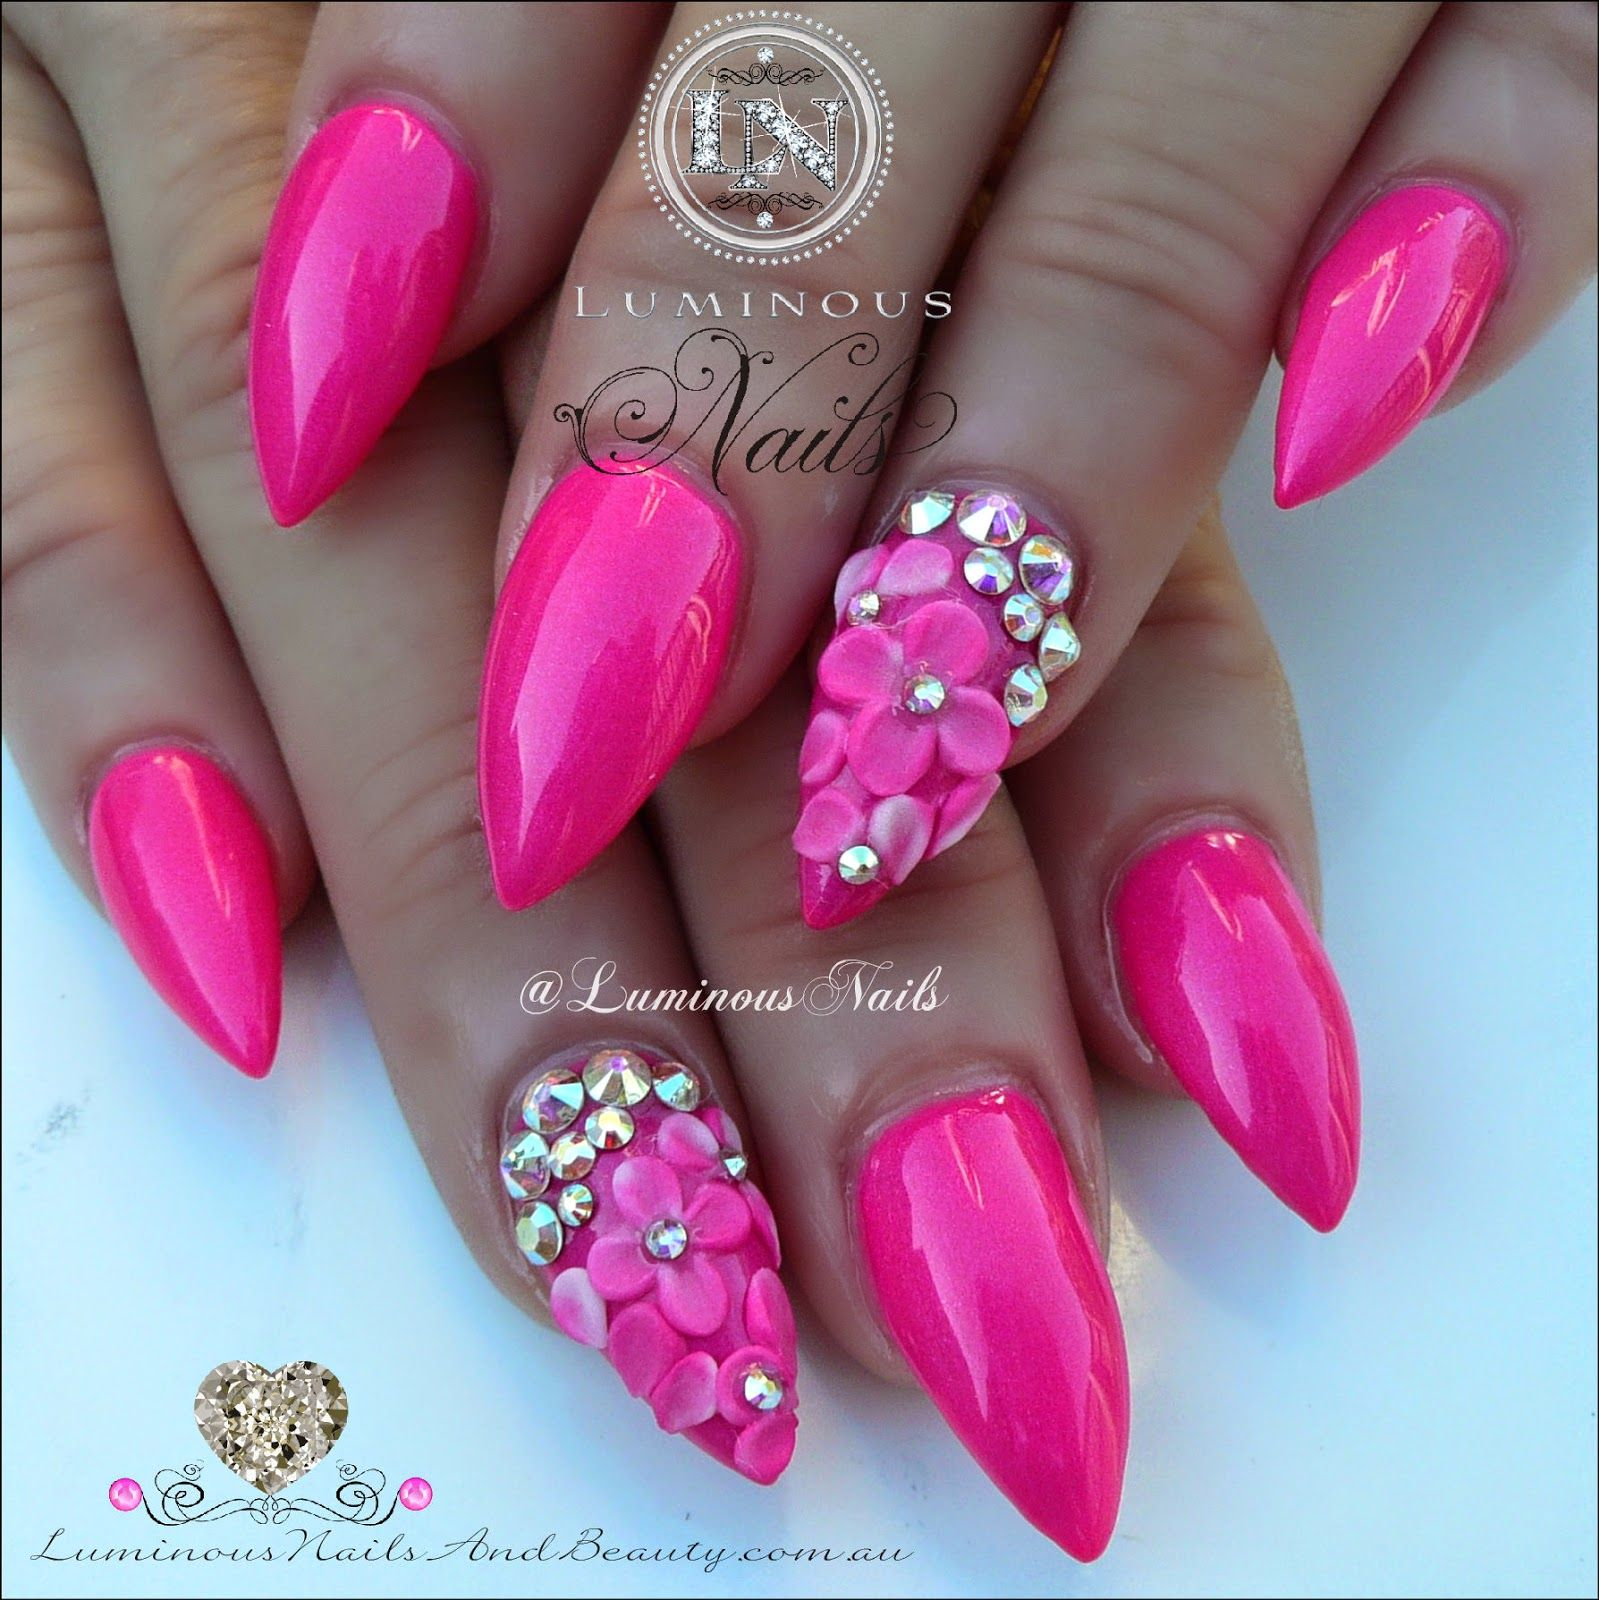 Luminous Nails 26 Beauty 2c Gold Coast Qld Hot Pink Nails With 3d Flowers 26 Swarovski Crystals Acrylic 26 Hot Pink Nails Luminous Nails Bright Pink Nails